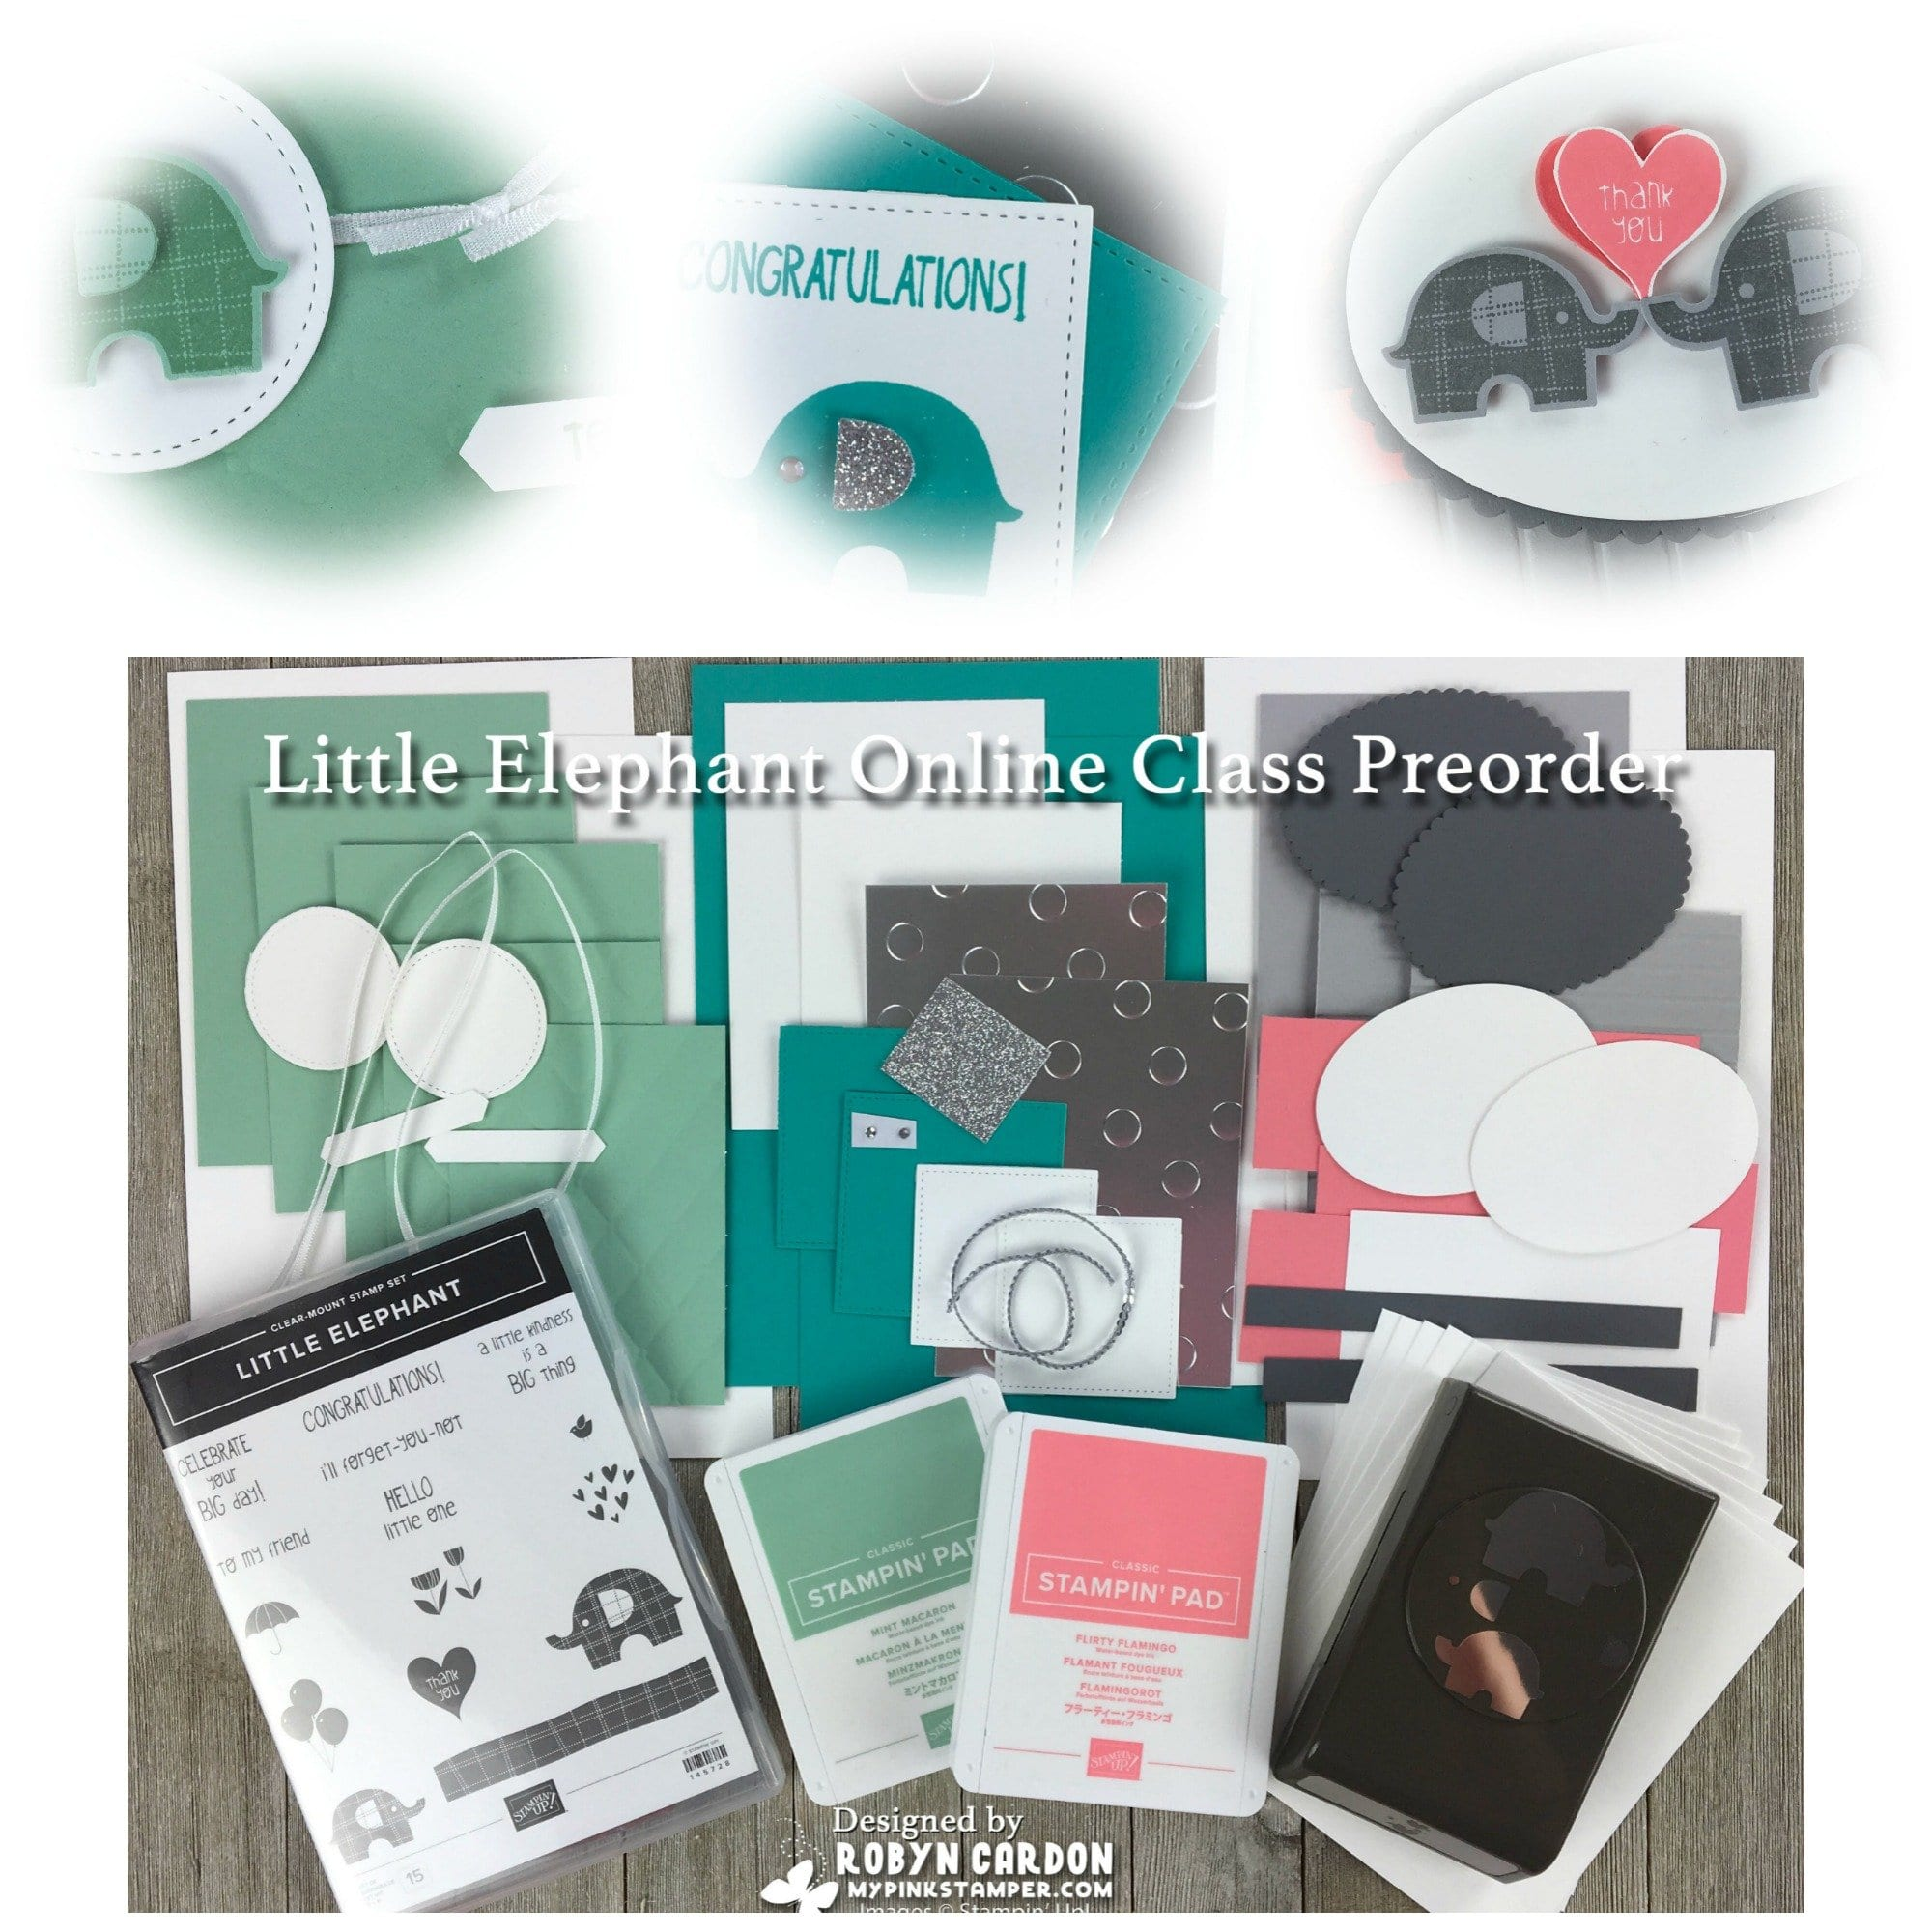 Stampin' Up! Little Elephant Online Class Preorder